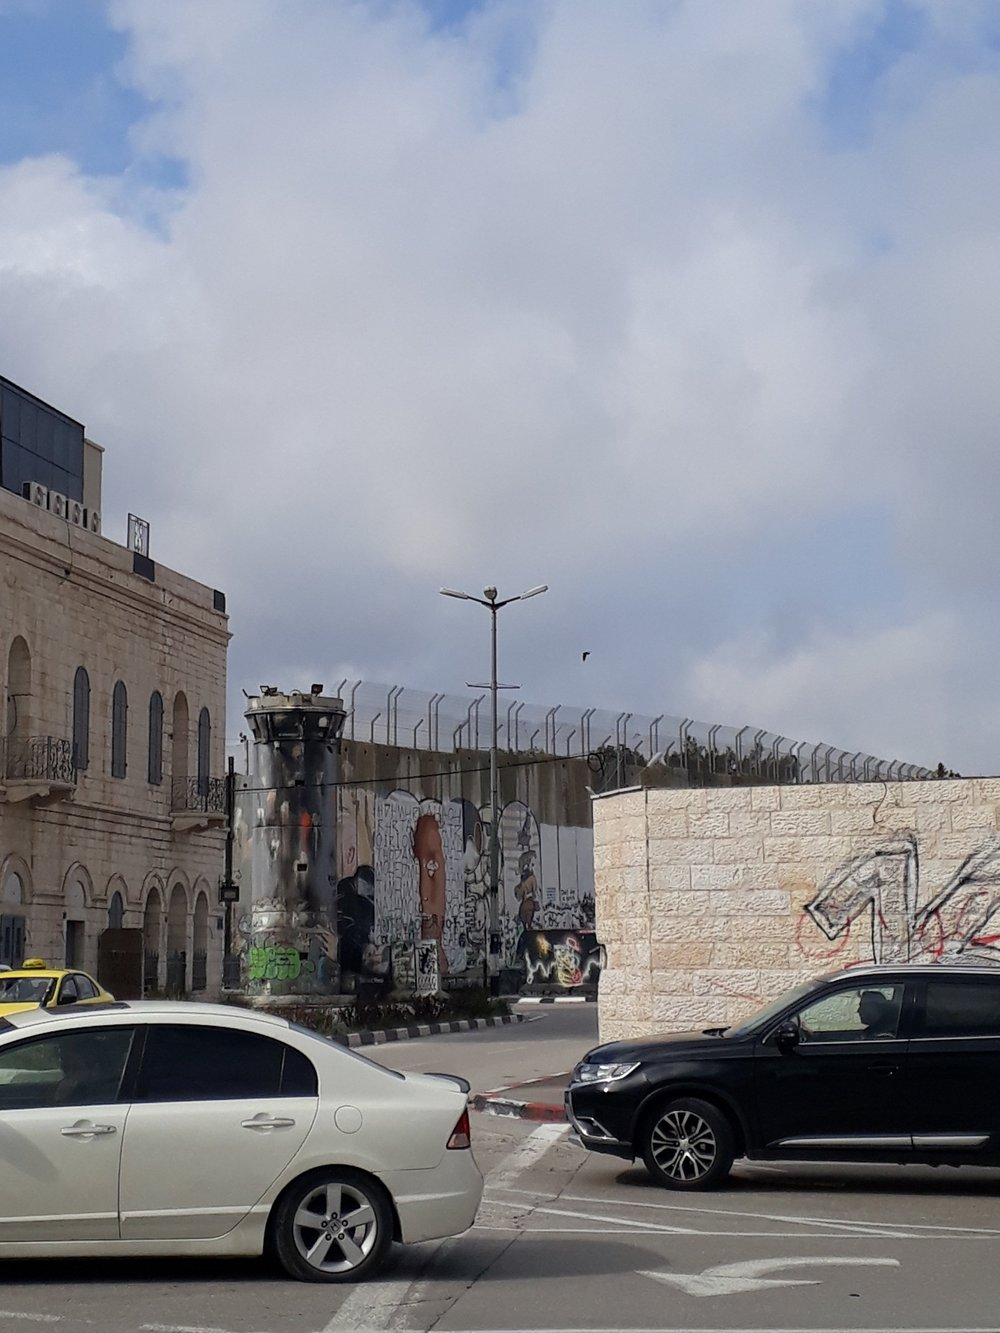 The walls and towers of Bethlehem